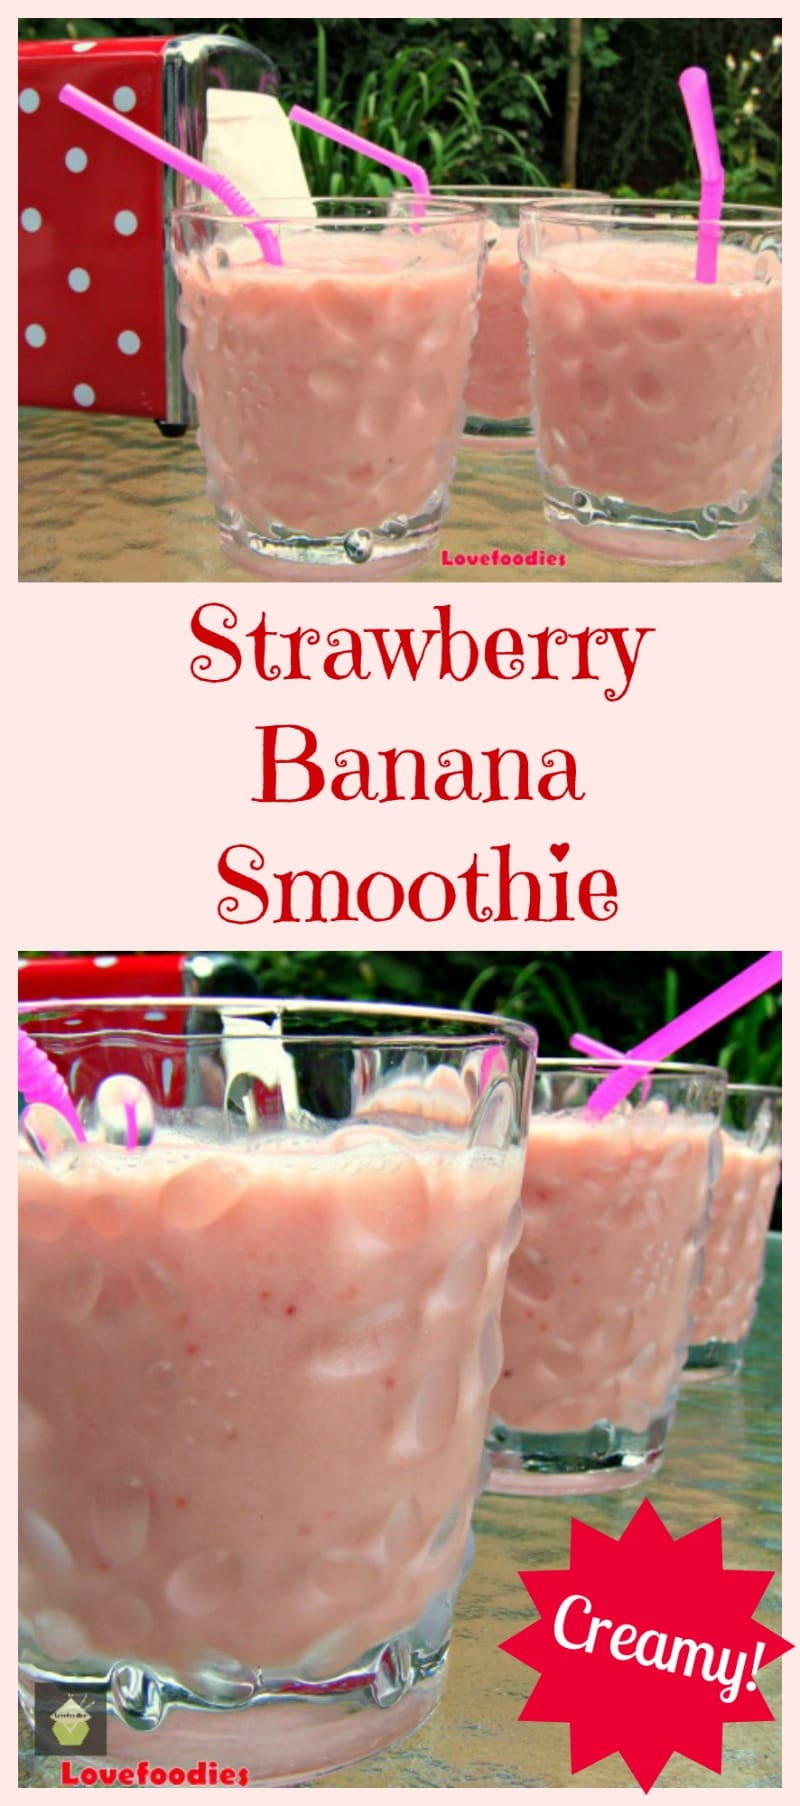 Creamy Banana And Strawberry Smoothie Lovefoodies